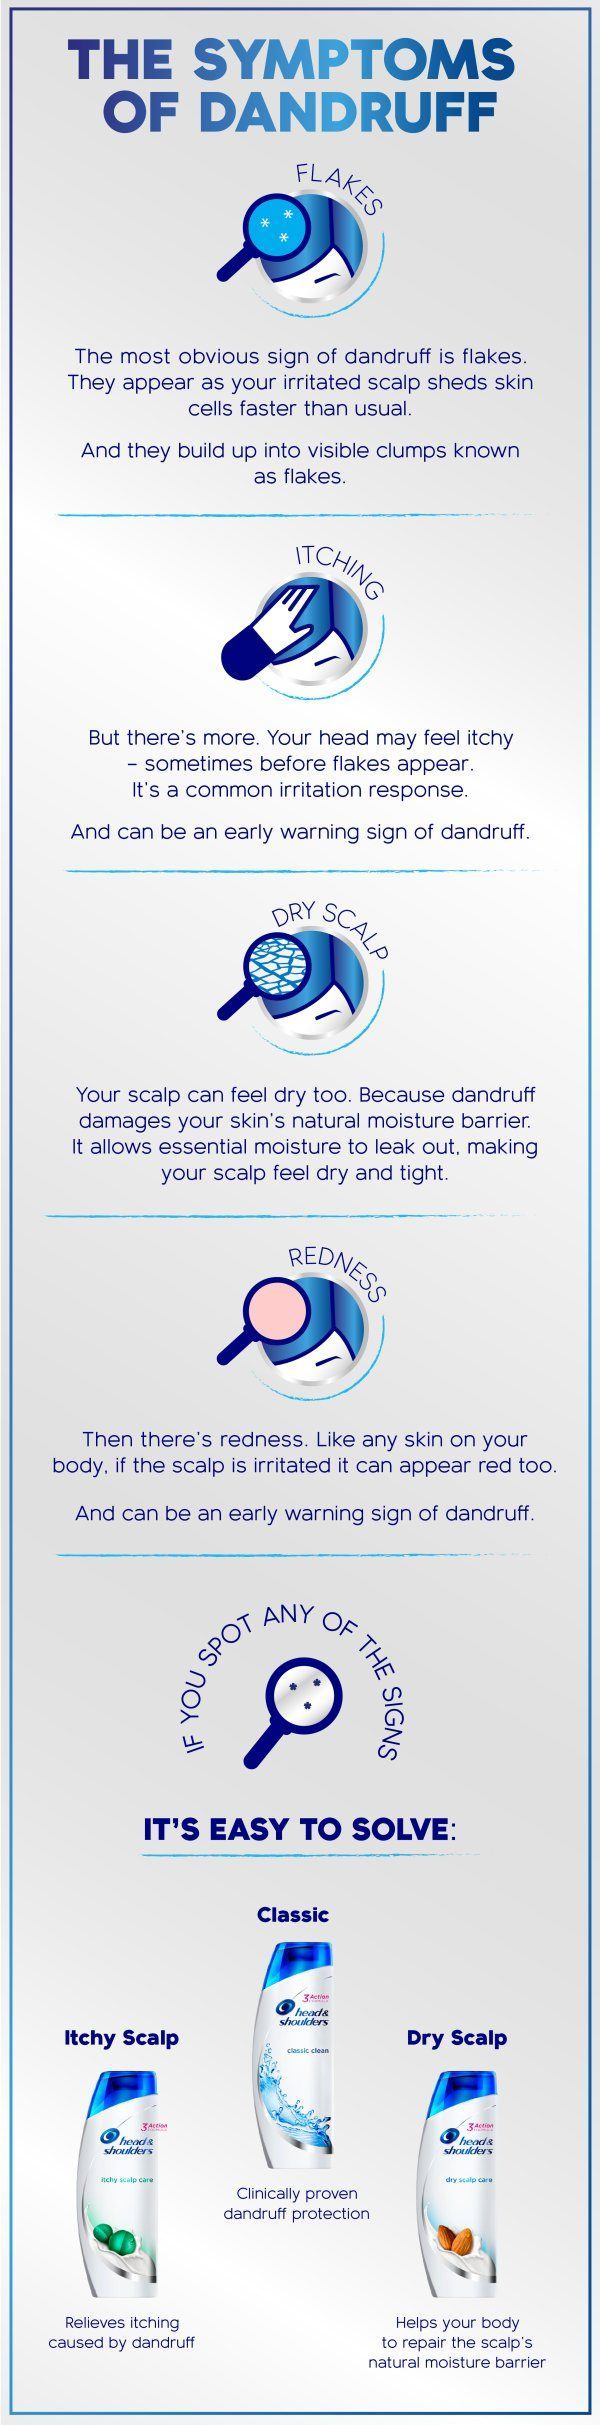 THE SYMPTOMS OF DANDRUFF